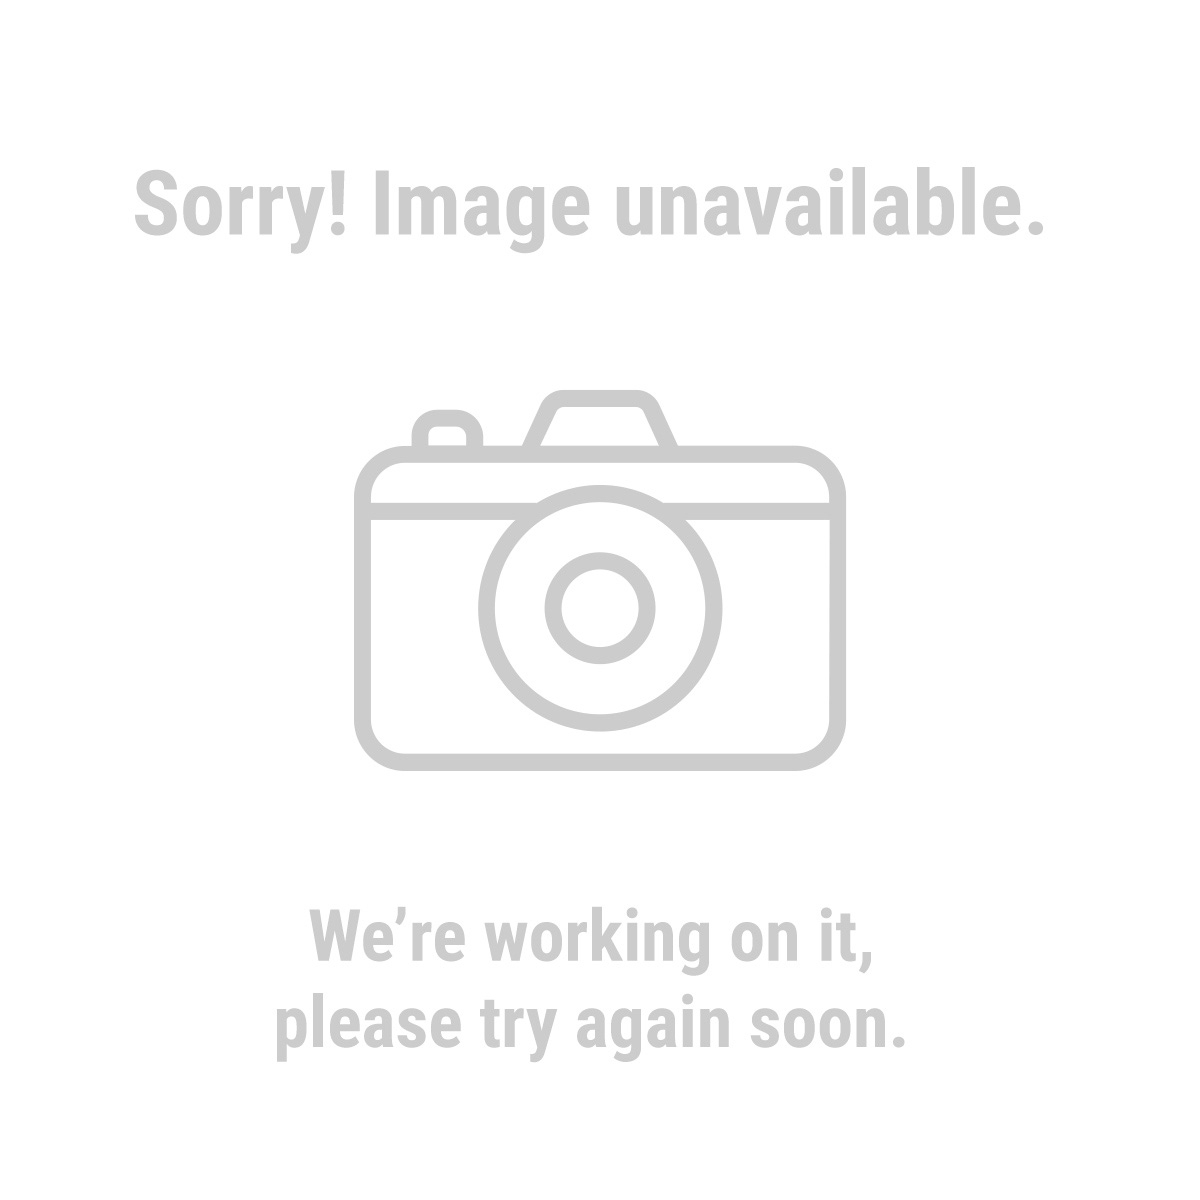 General Two Shelf Steel Service Cart - 1200 x 1200 jpeg 126kB